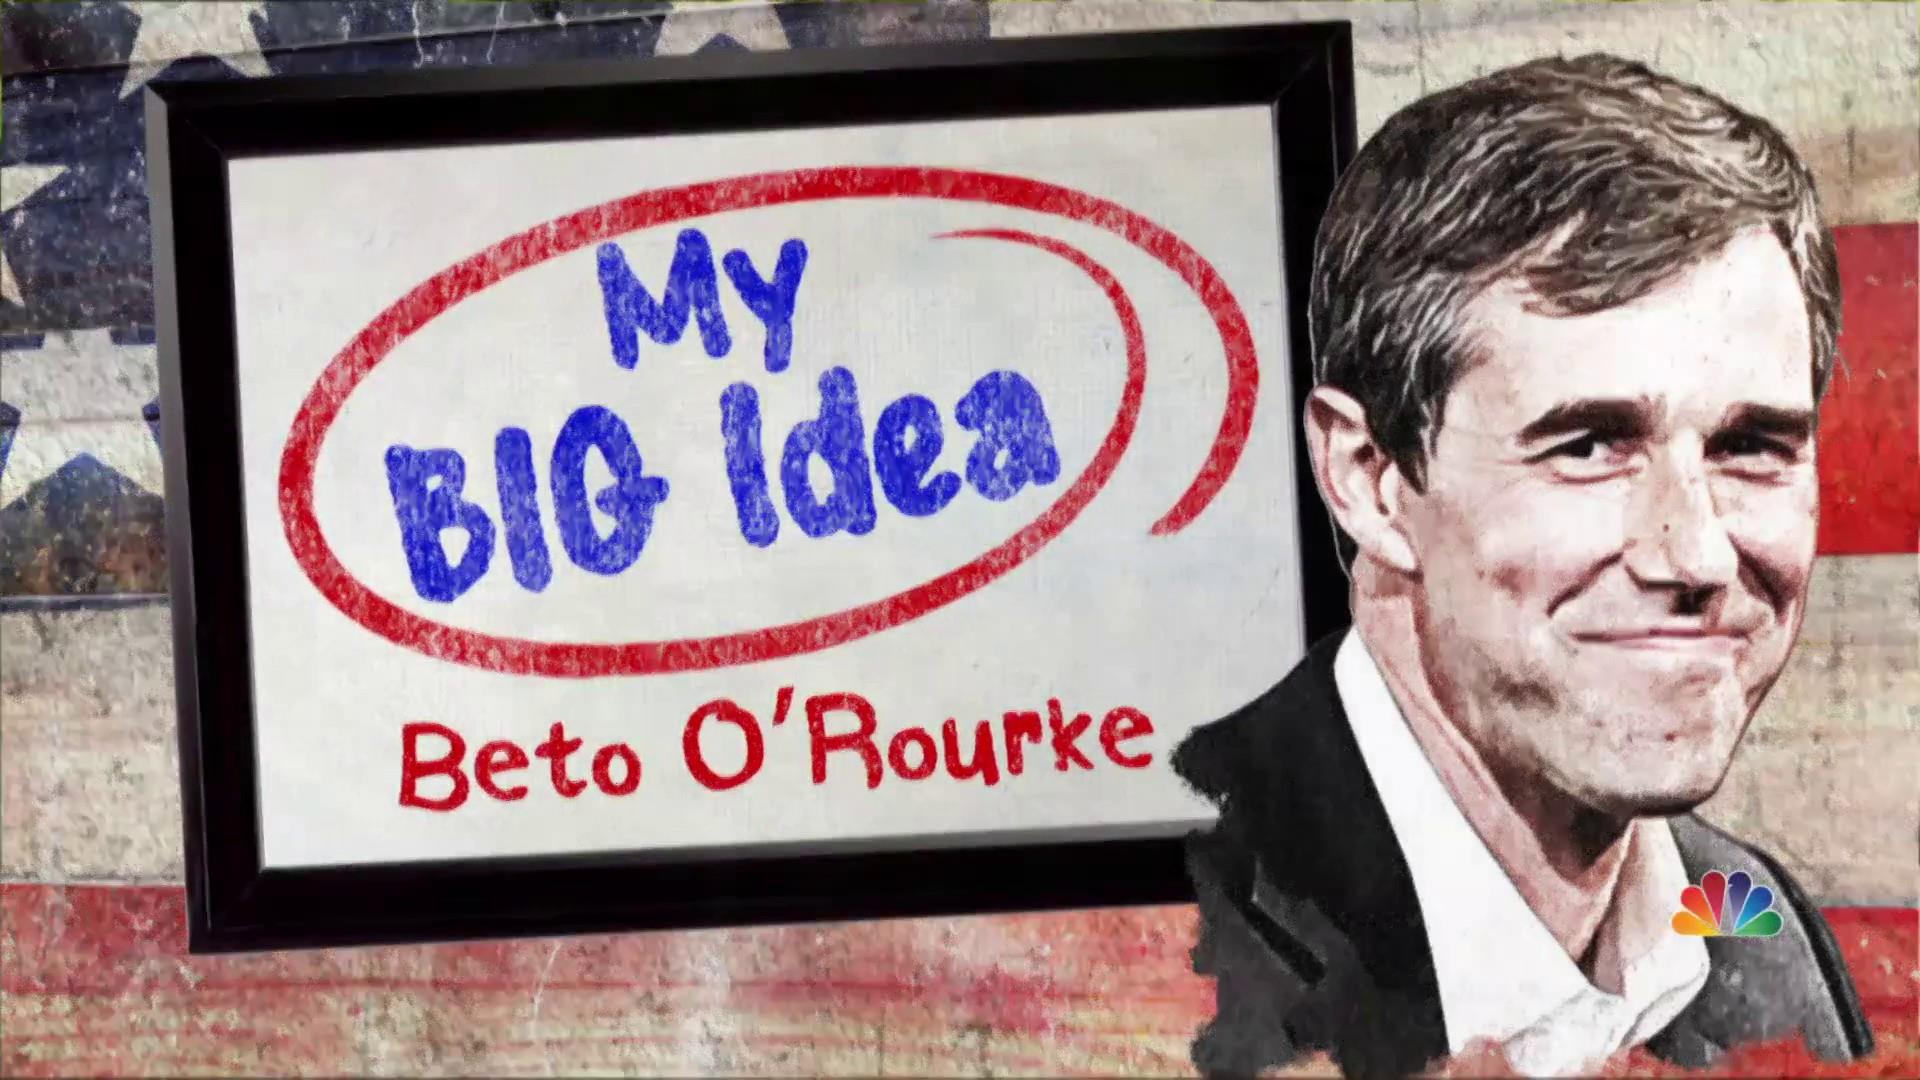 Beto O'Rourke shares his Big Idea for new voting rights act